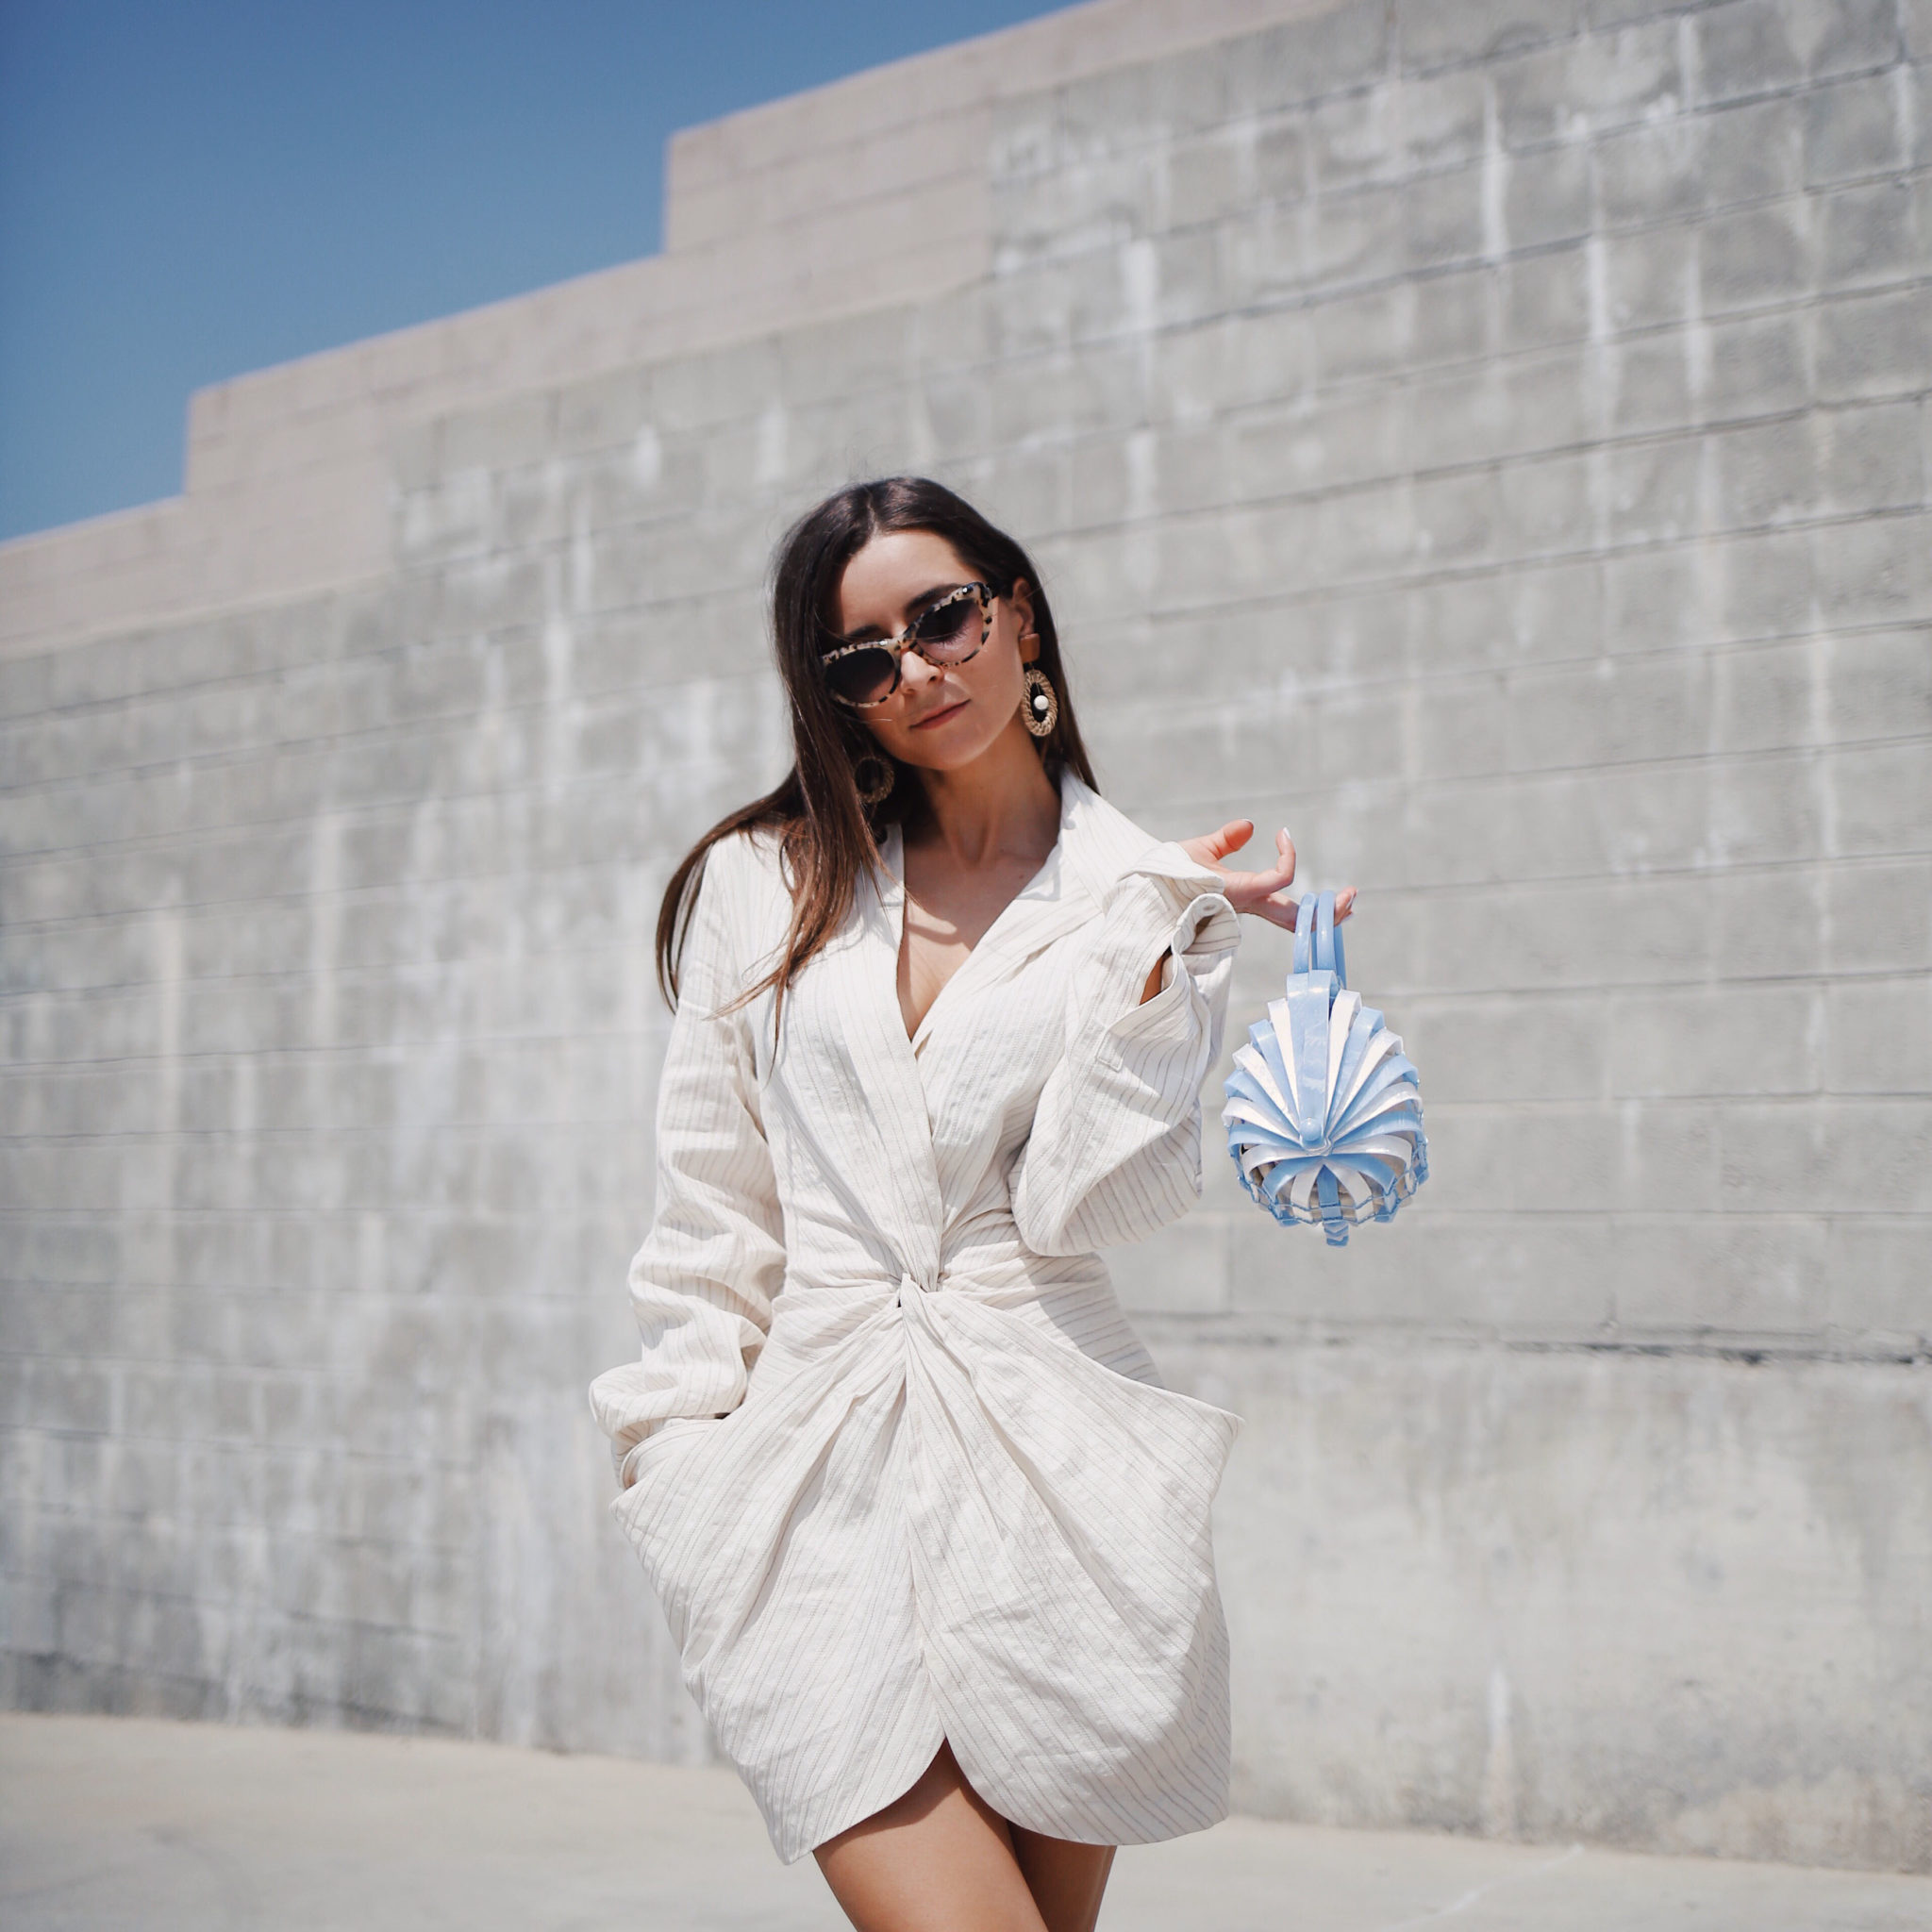 Discover Jacquemus the French Not So Parisian Designer on Houseofcomil.com. French Fashion Blogger Julia Comil is wearing a Jacquemus Dress, Bag Cult Gaia, and Krewe x Reformation sunglasses in Los Angeles